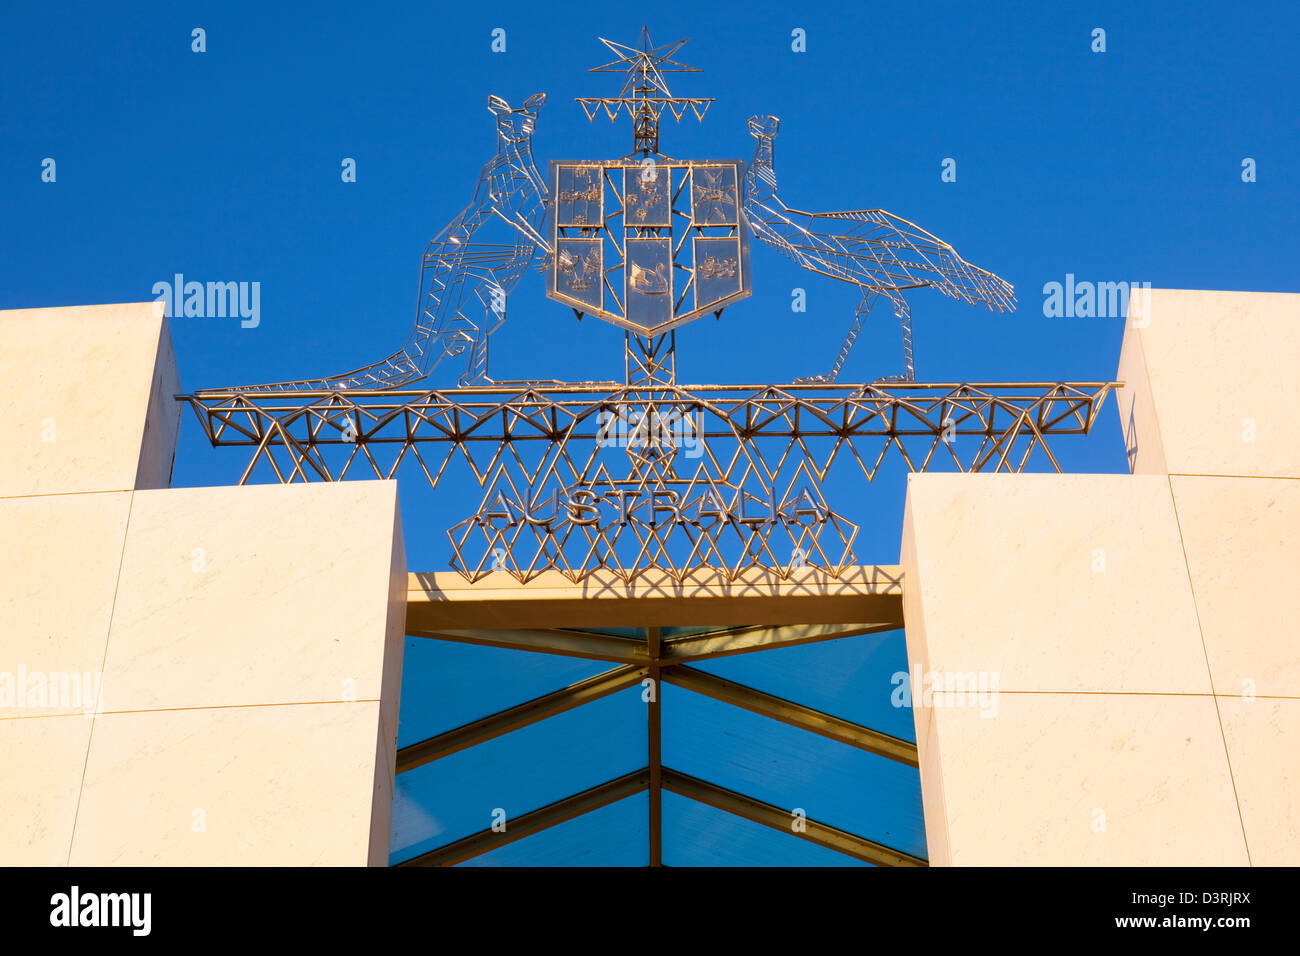 Australian coat of arms adorning the entrance to Parliament House. Canberra, Australian Capital Territory (ACT), - Stock Image